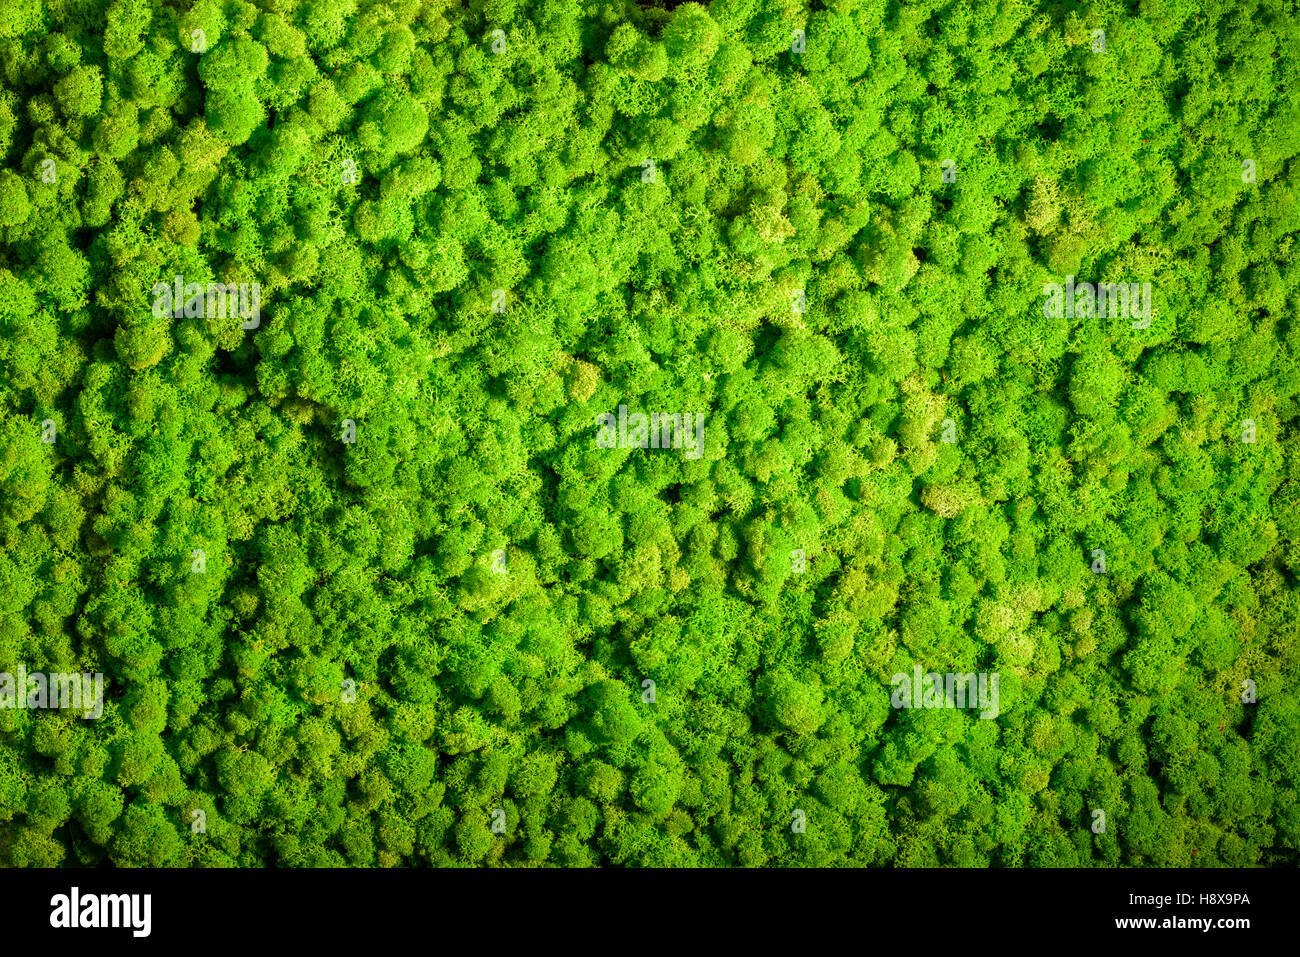 reindeer moss wall green wall decoration made of reindeer lichen stock photo 125968258 alamy. Black Bedroom Furniture Sets. Home Design Ideas